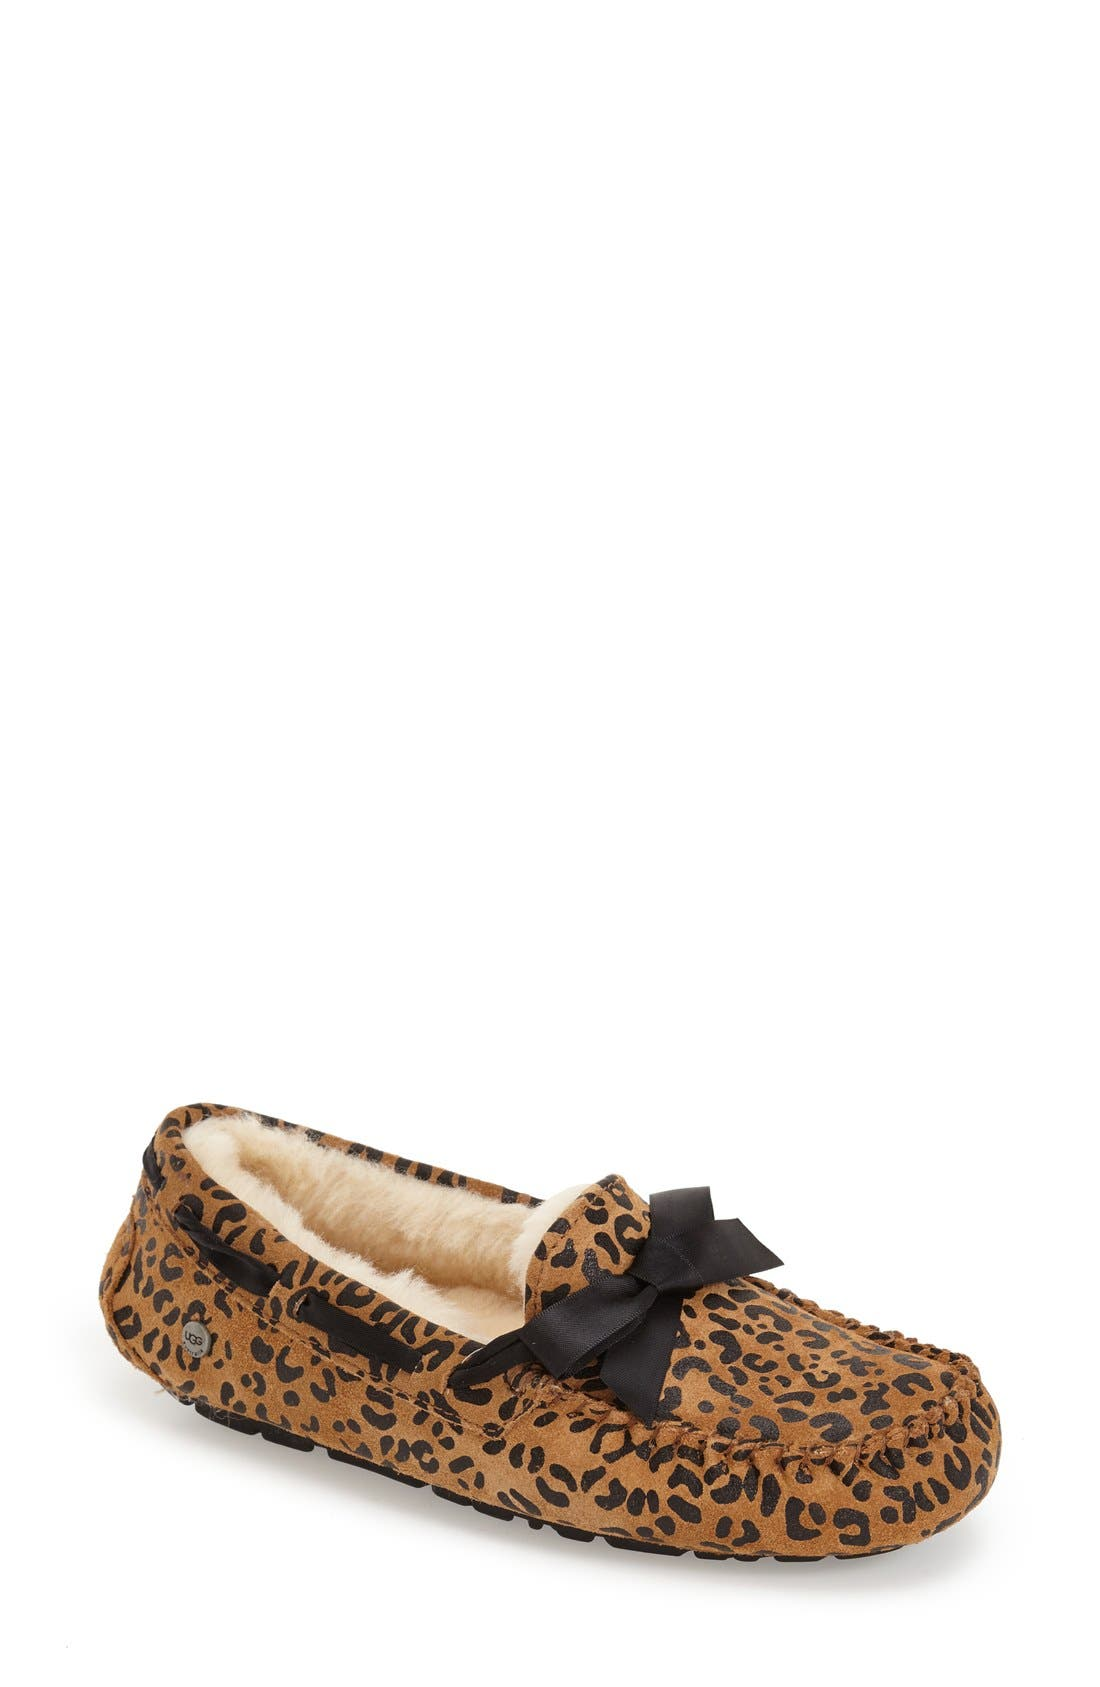 Alternate Image 1 Selected - UGG® Dakota Leopard Print Bow Slipper (Women)